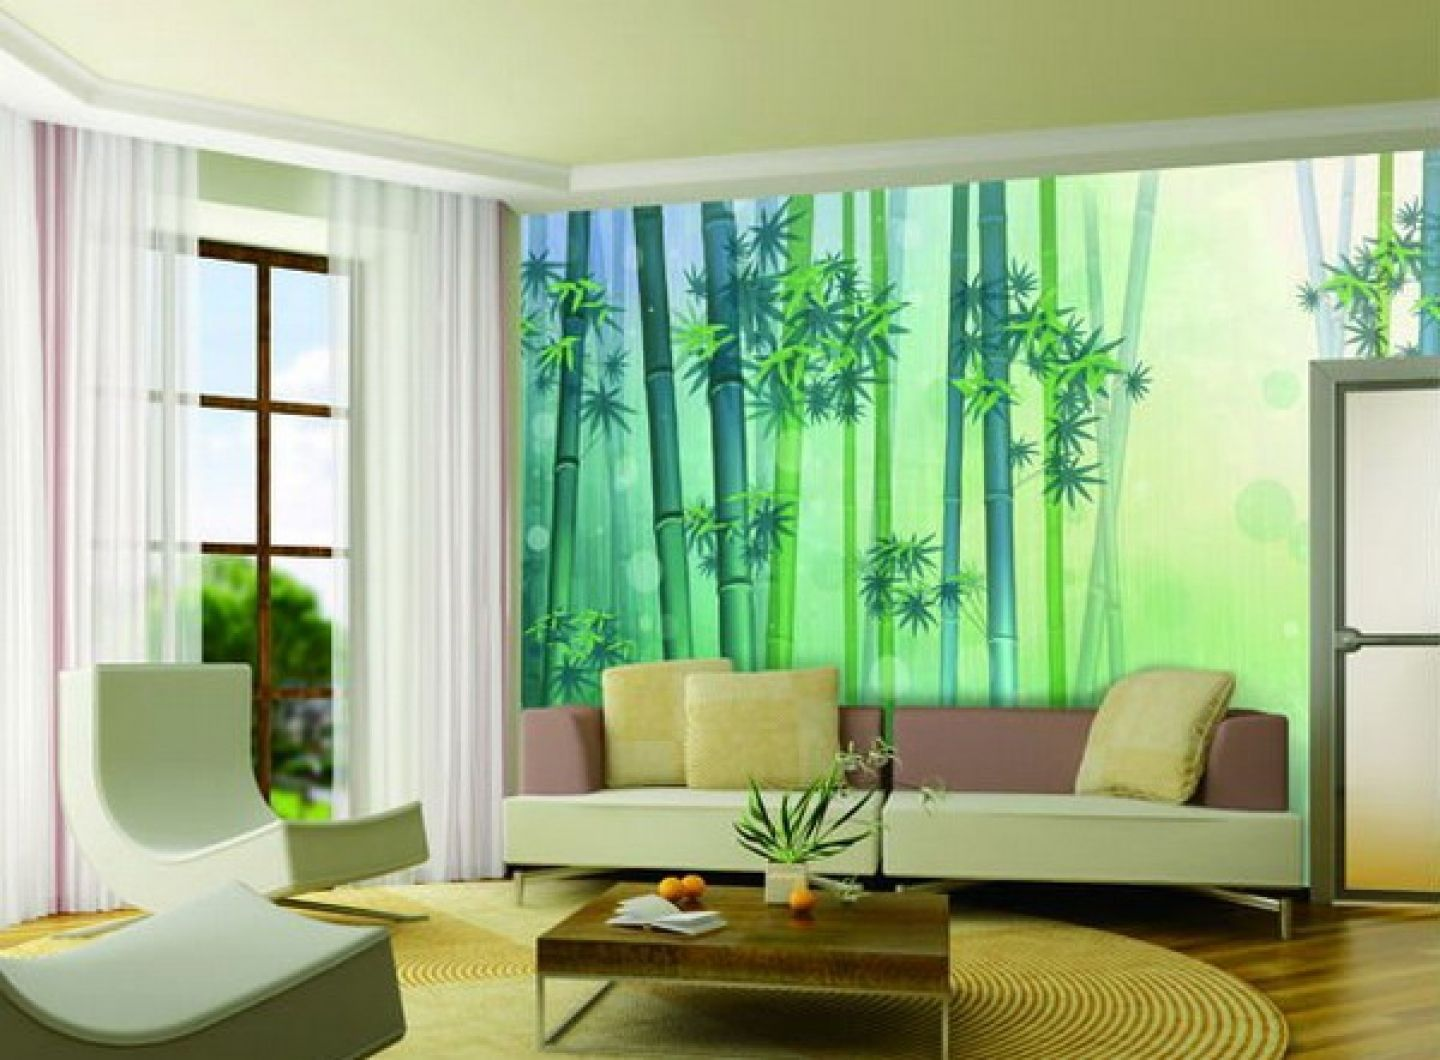 Best Images About Interior Design On Pinterest Green Living - Wall paint designs for living room